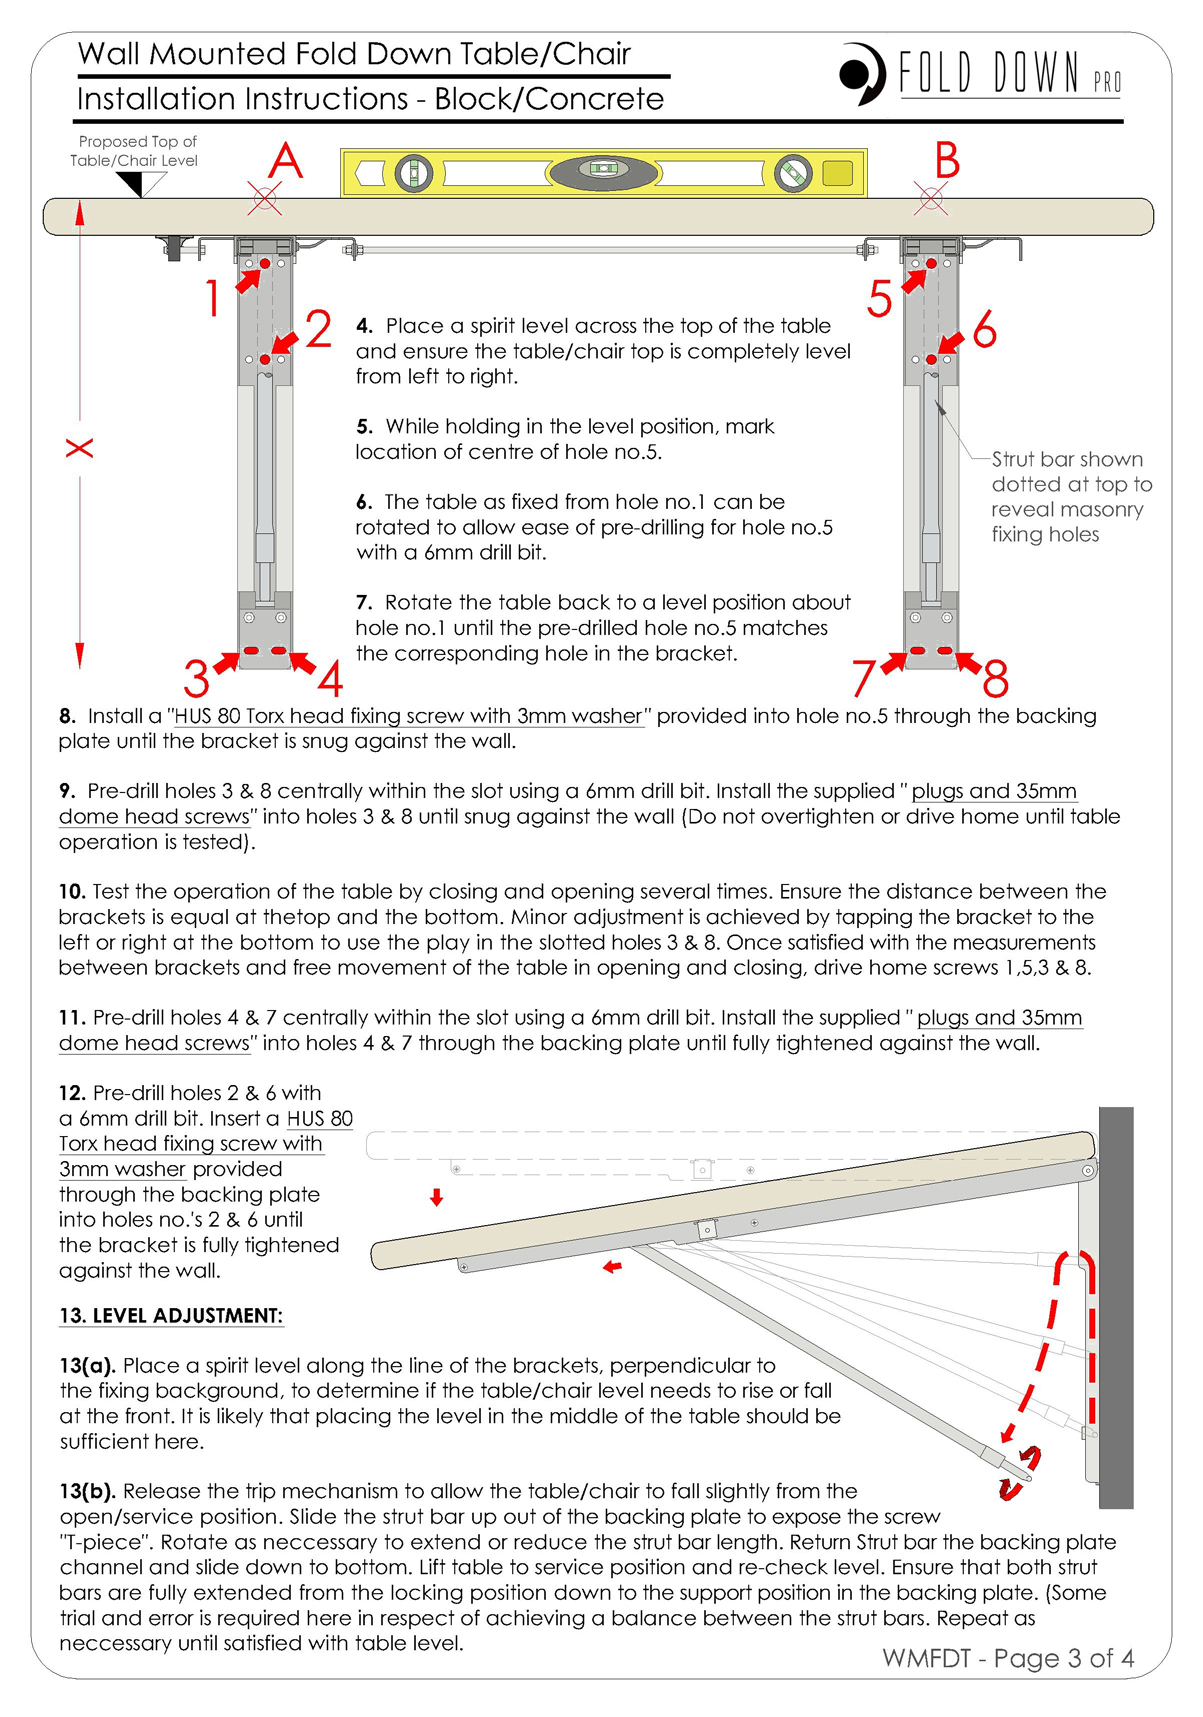 Wall Mounted Fold Down Table Chair Instructions Page 3